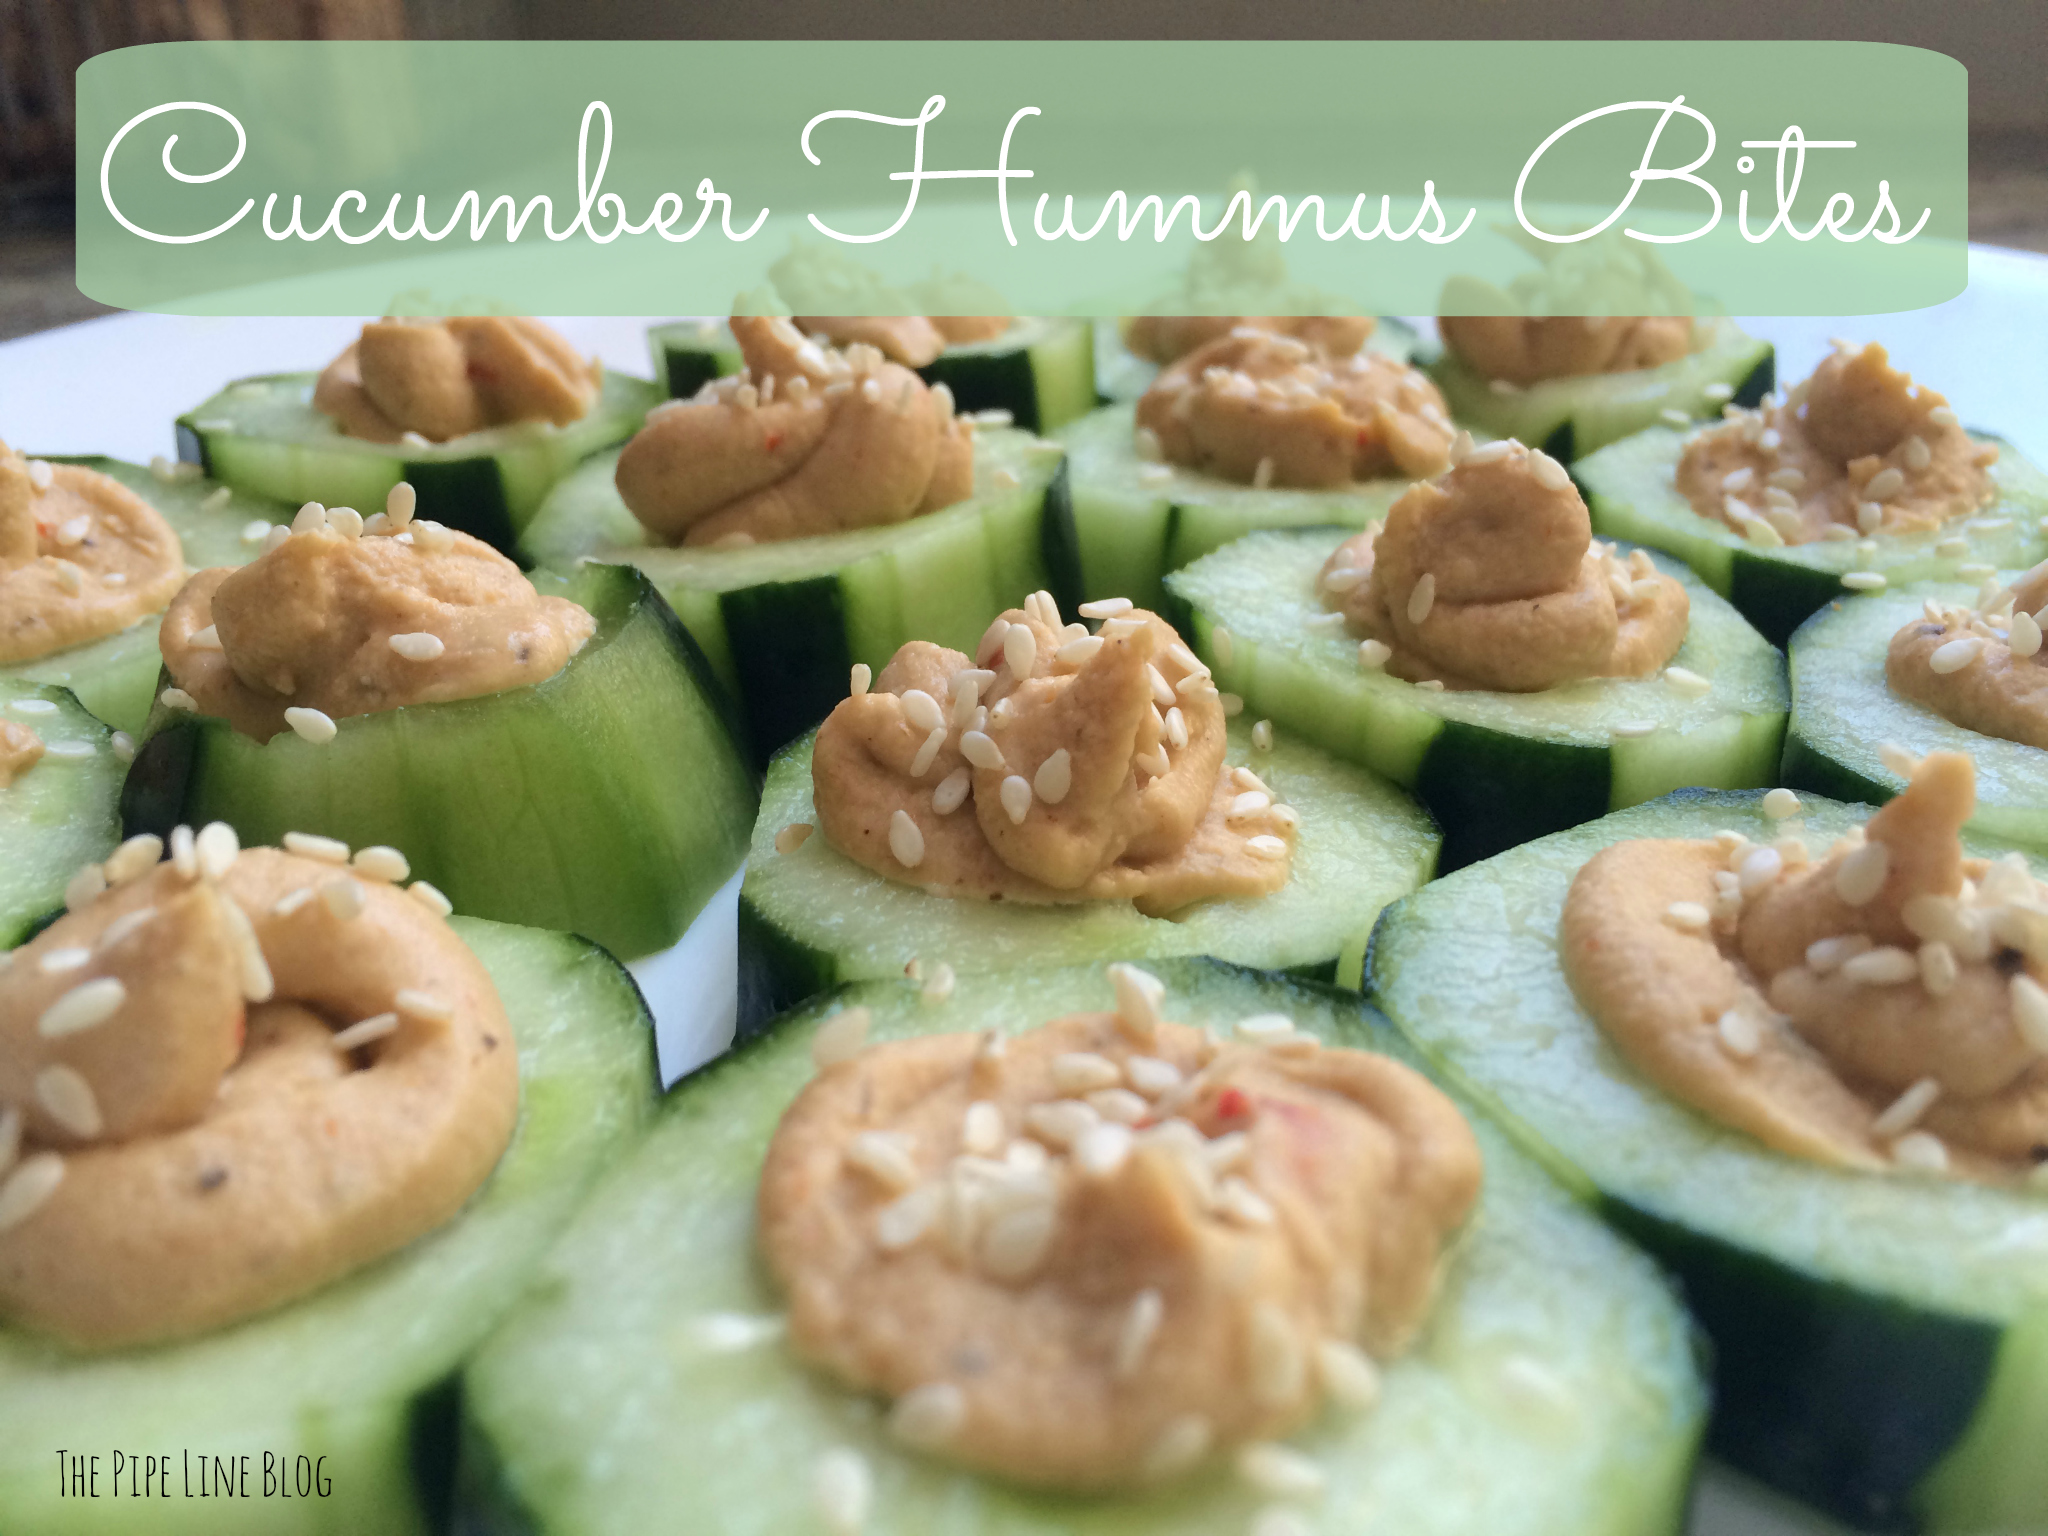 Piping Rock - The Pipe Line - Cucumber Hummus Bites - Healthy Snack Recipe